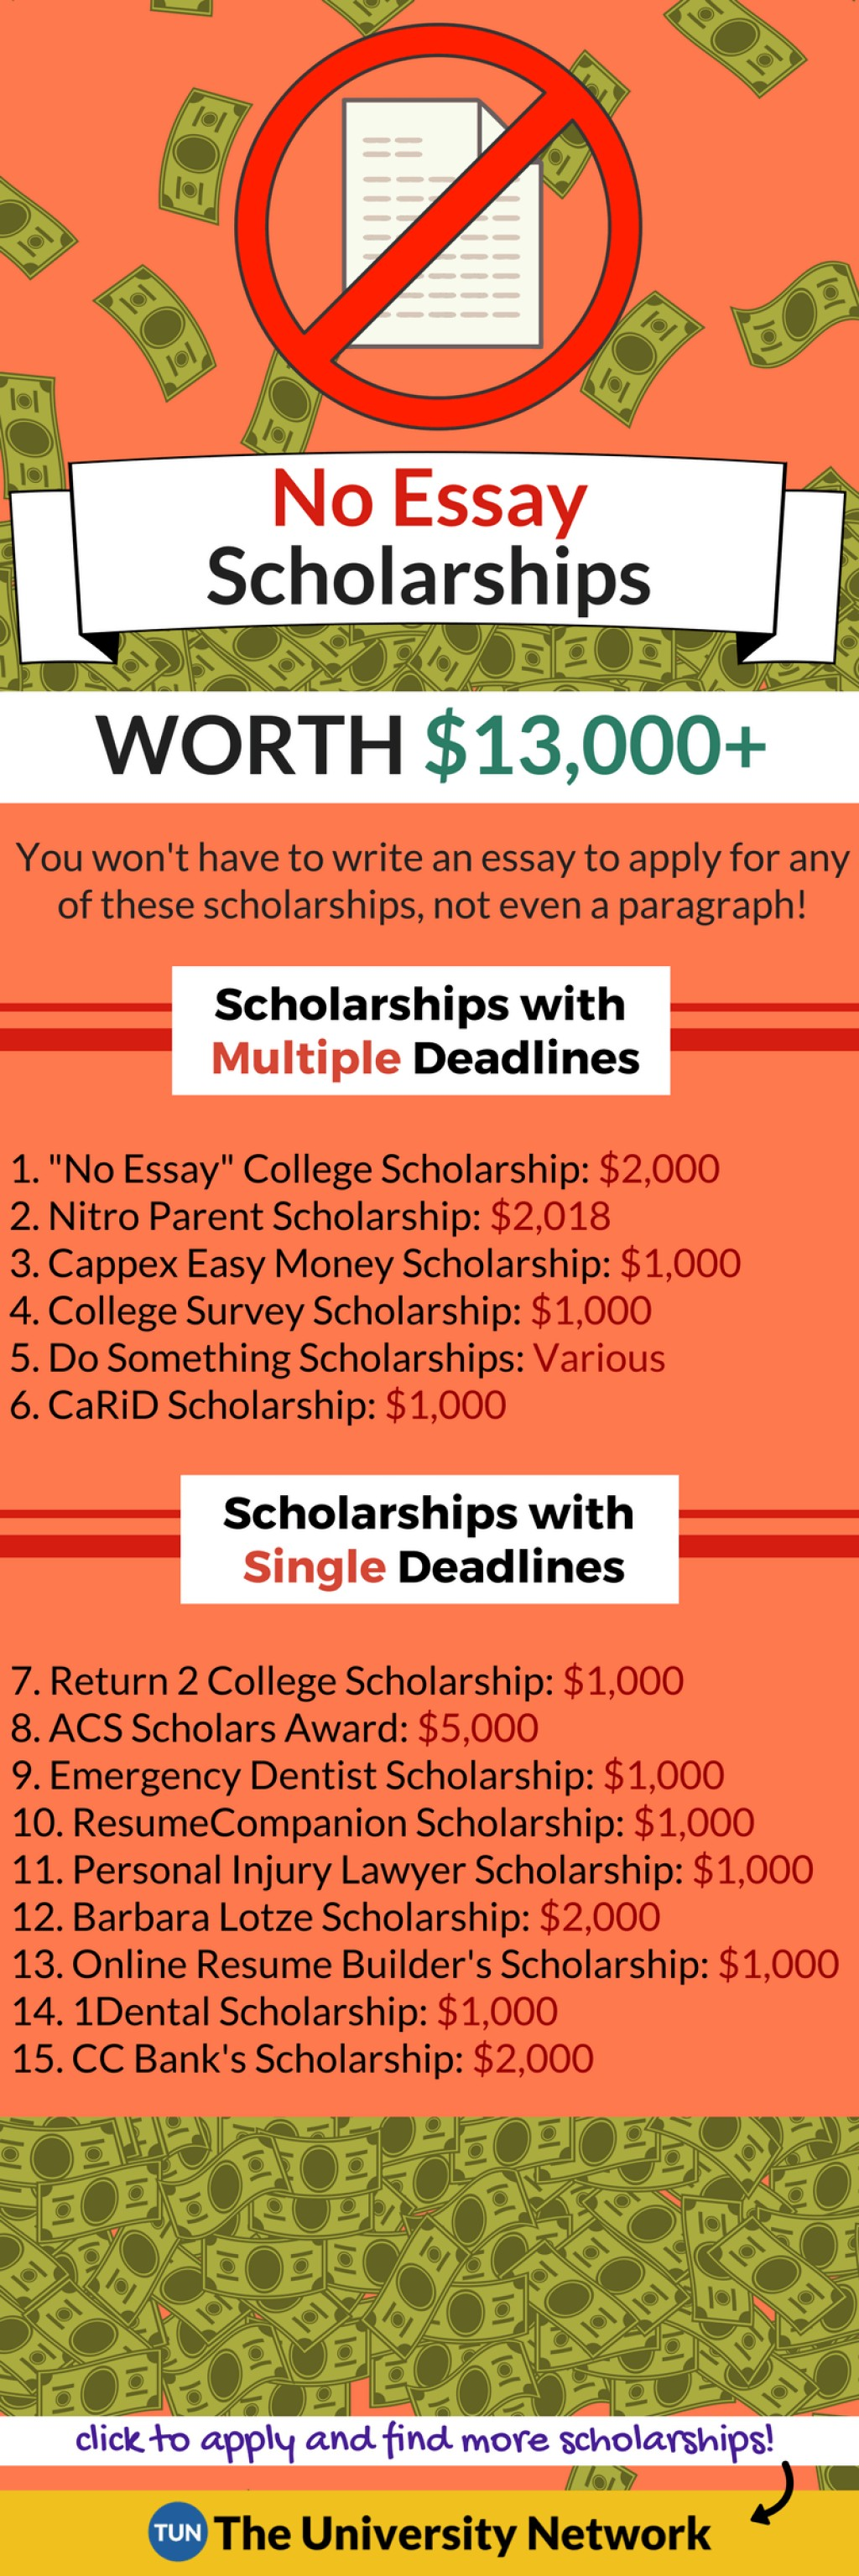 023 Easy No Essay Scholarships Example Striking 2015 2019 2018 Large